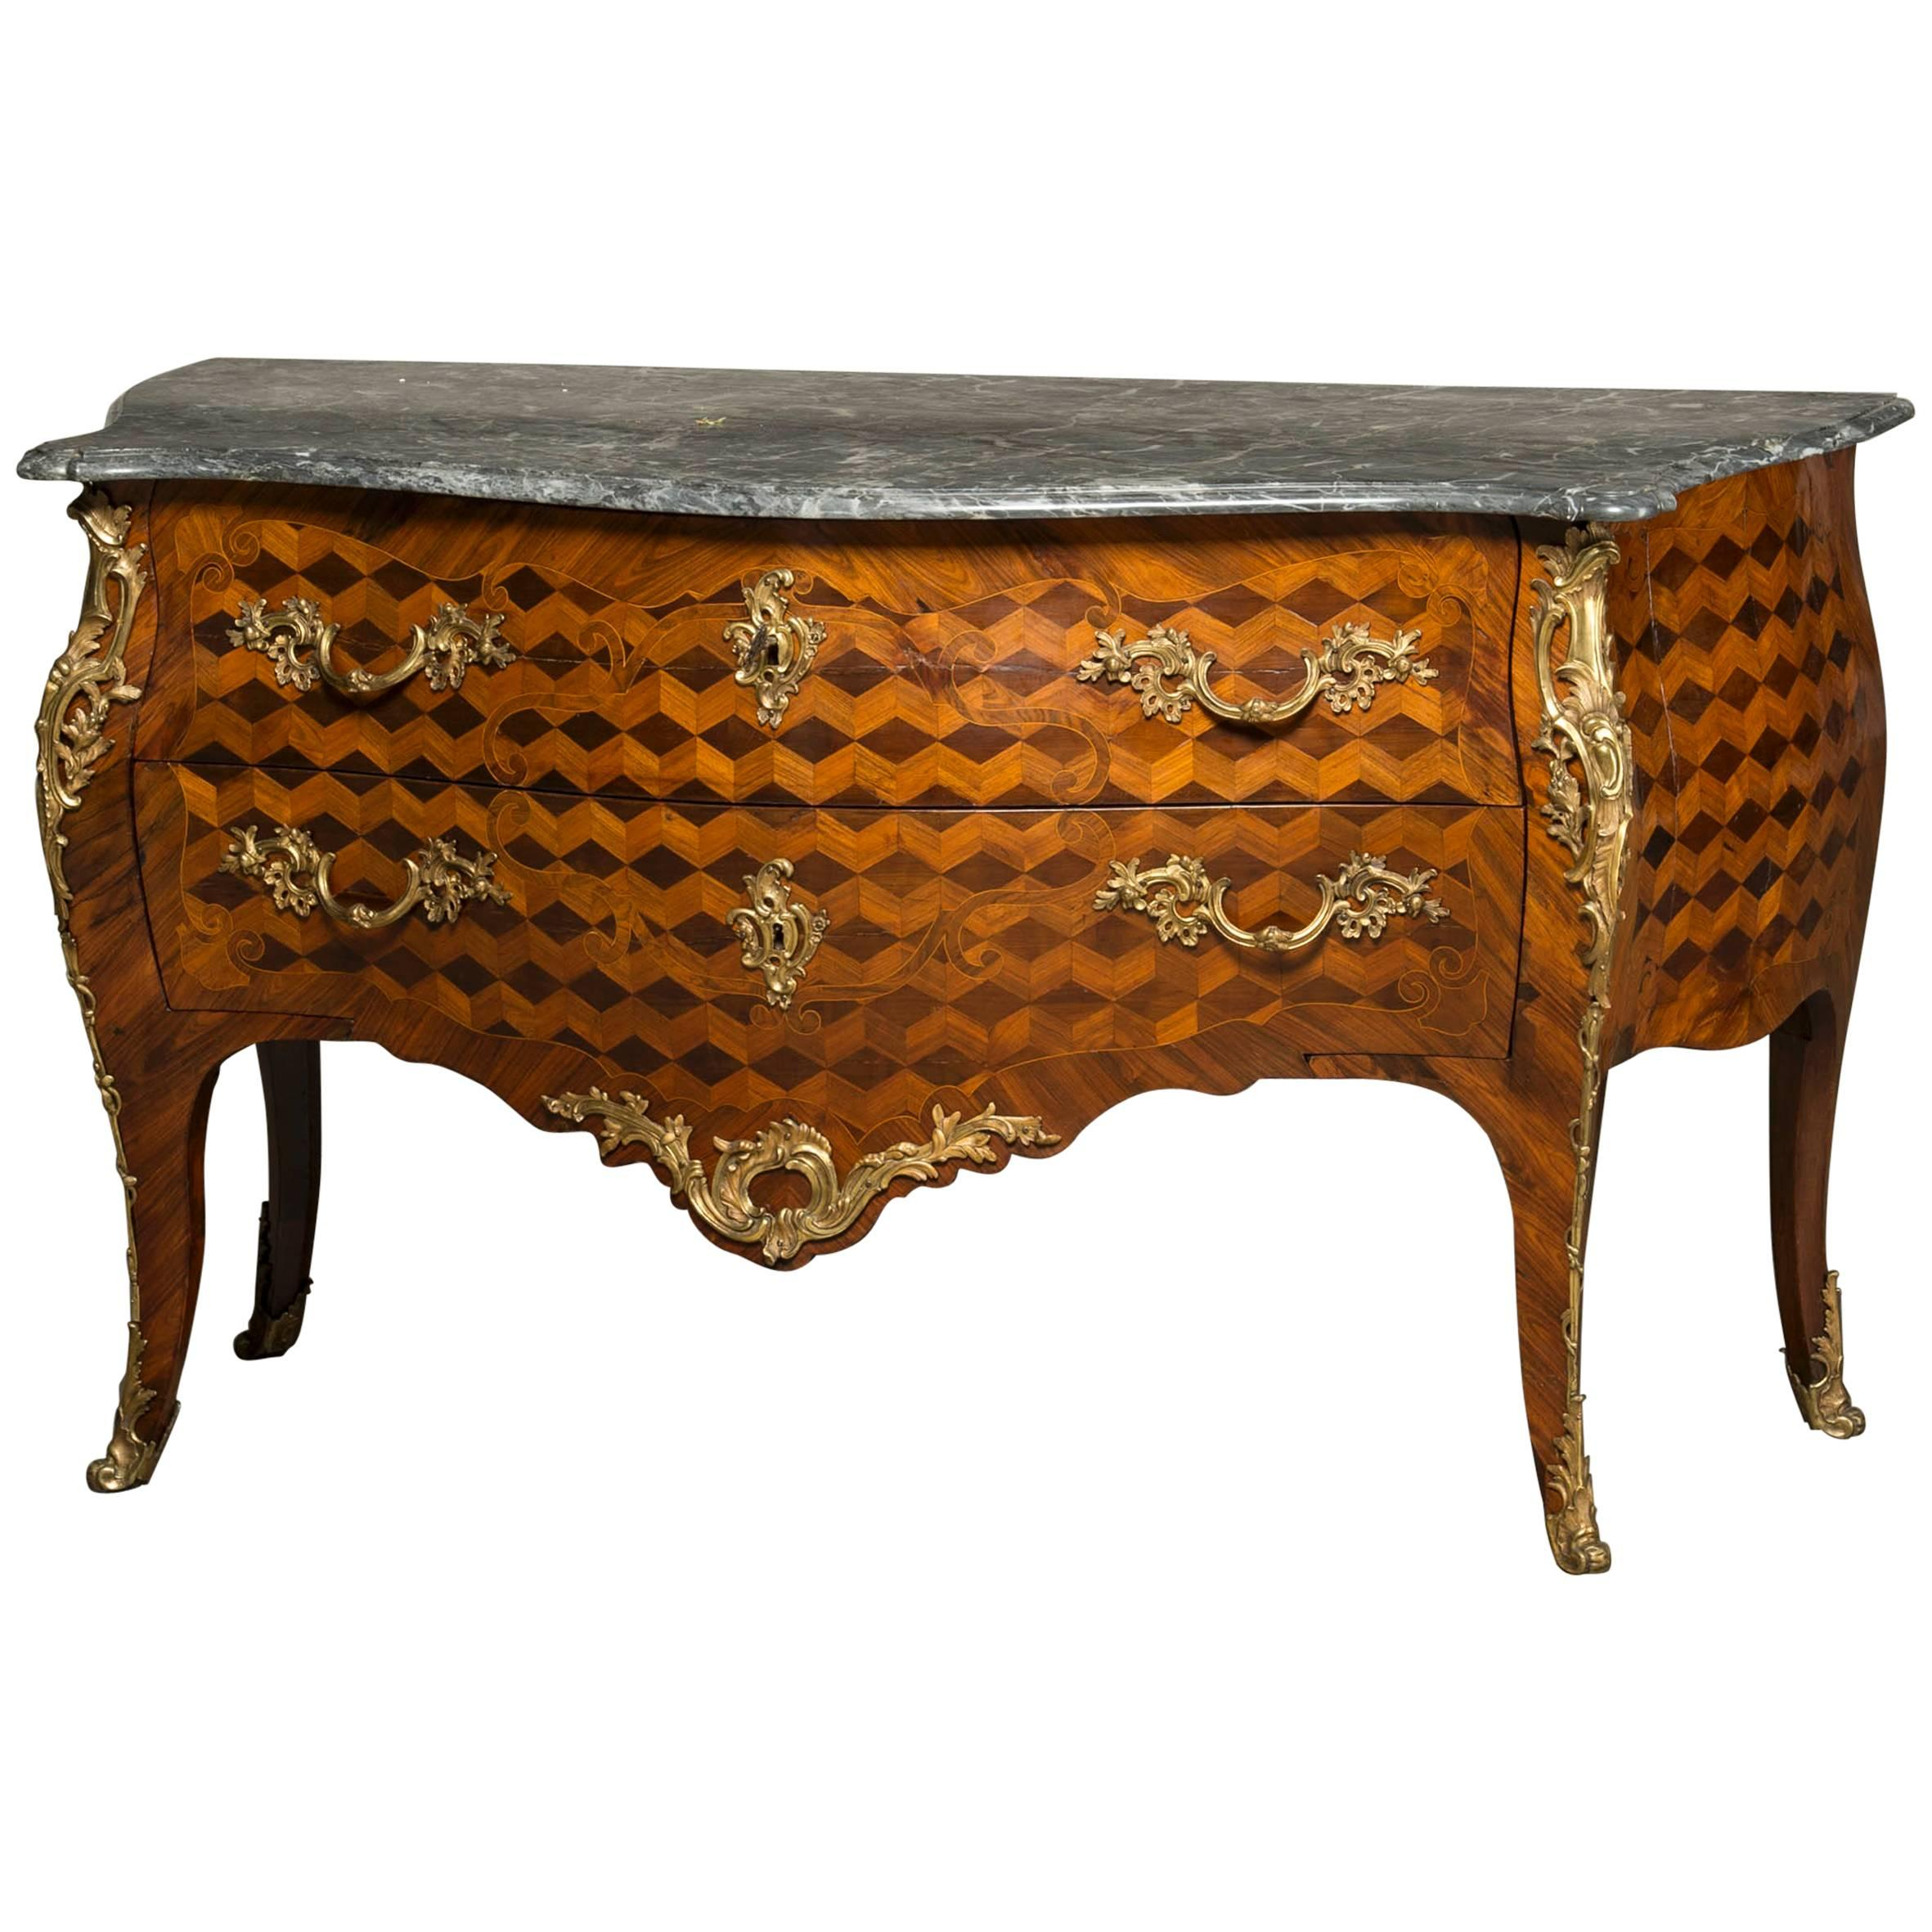 Large Decorative Louis XV Chest of Drawers, Mid-18th Century